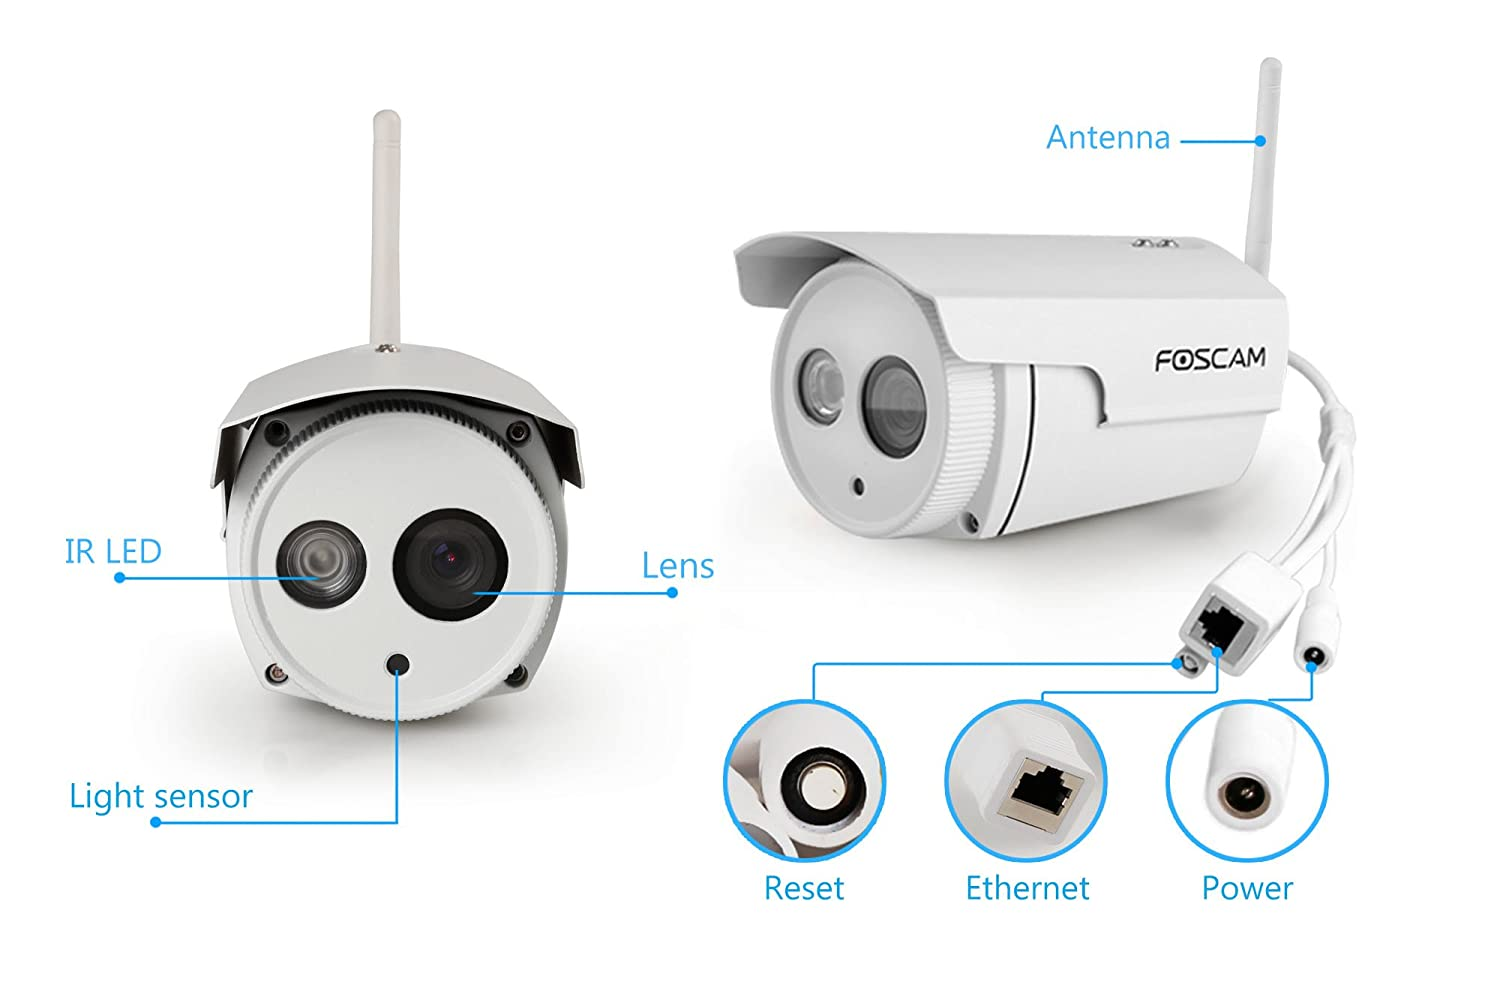 foscam fi9803ep 720p hd poe cctv ip camera amazon co uk foscam fi9803ep 720p hd poe cctv ip camera amazon co uk computers accessories